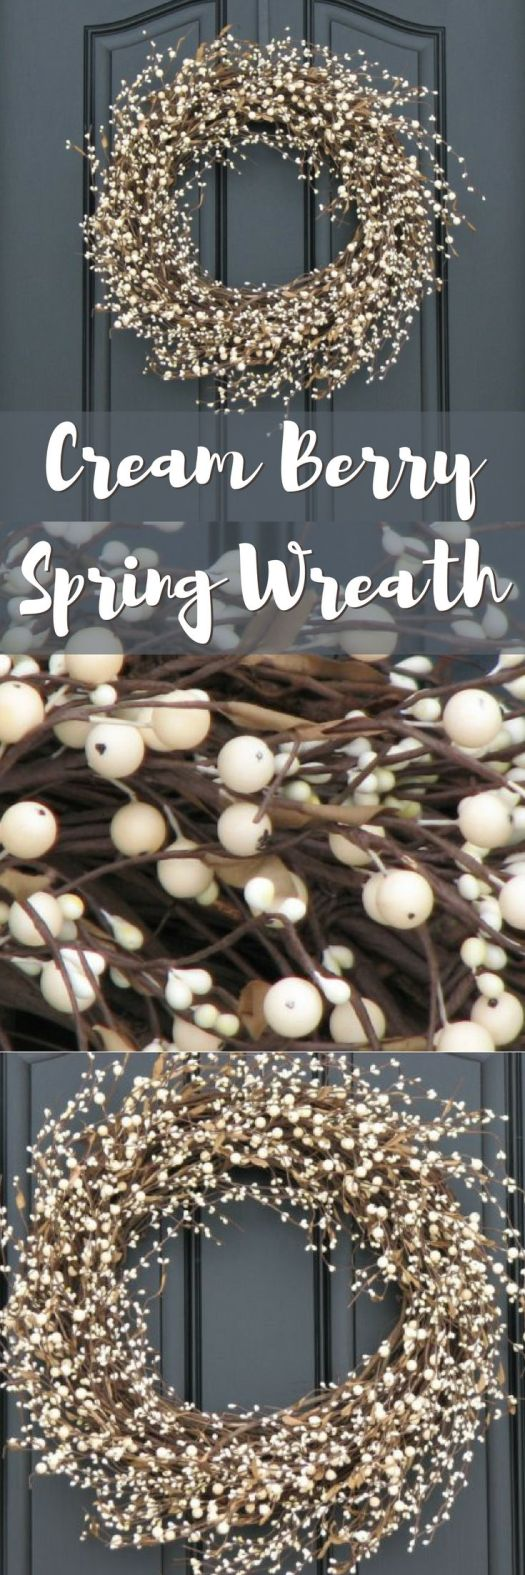 I love this gorgeous, simple spring wreath with the lovely cream colored berries! Perfect for late winter or early spring before the leaves have come out yet! This would look great on our front door! Check out all of craft evangelist's beautiful wreath finds!